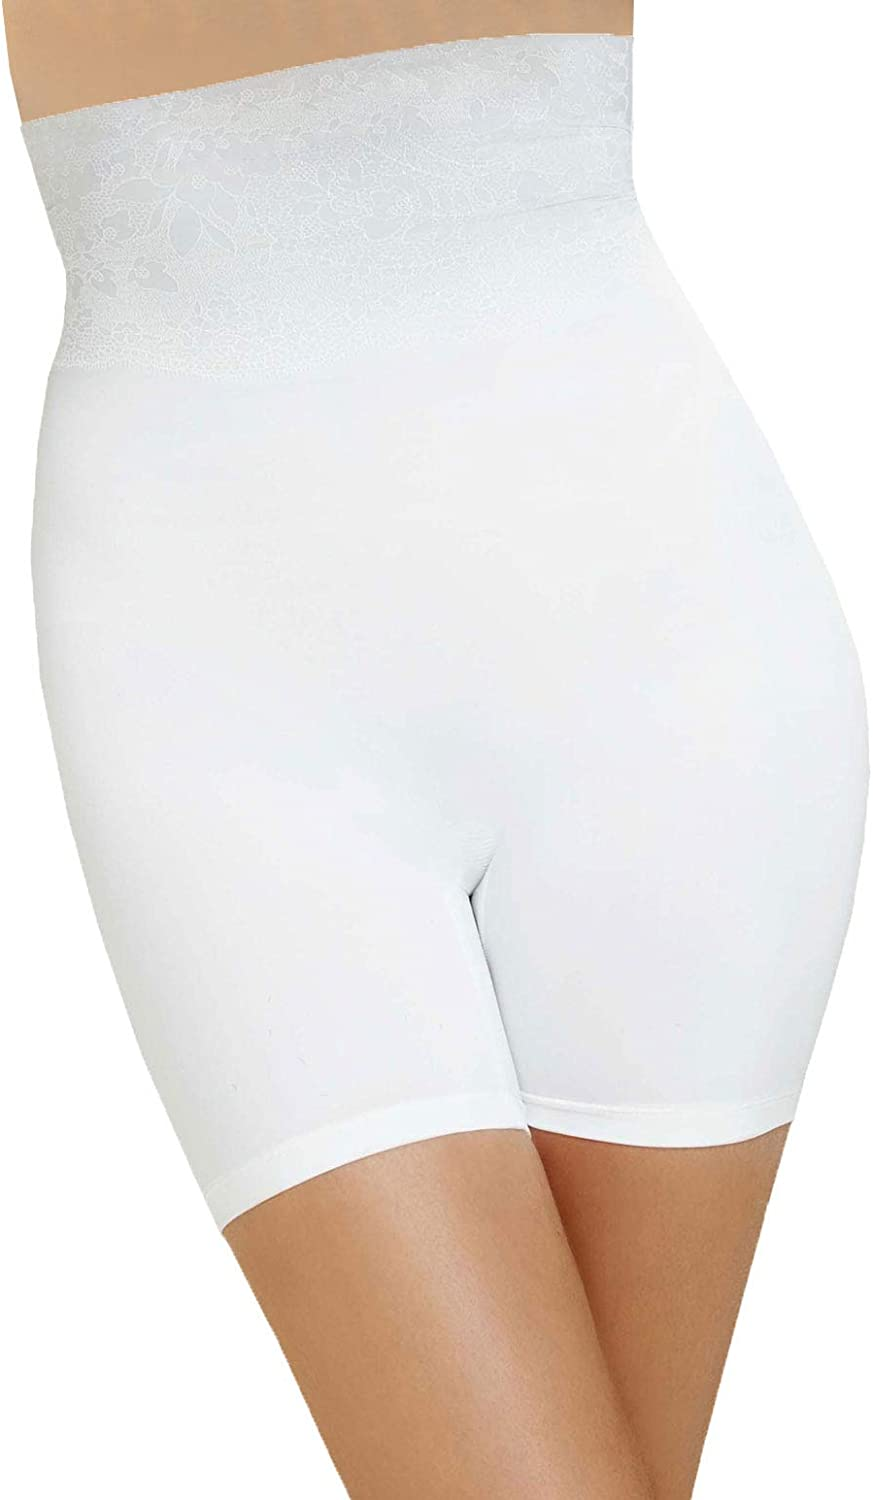 Body Super sale period limited Wrap Shapewear White The OFFicial mail order Panty Leg Long Catwalk High-Waist